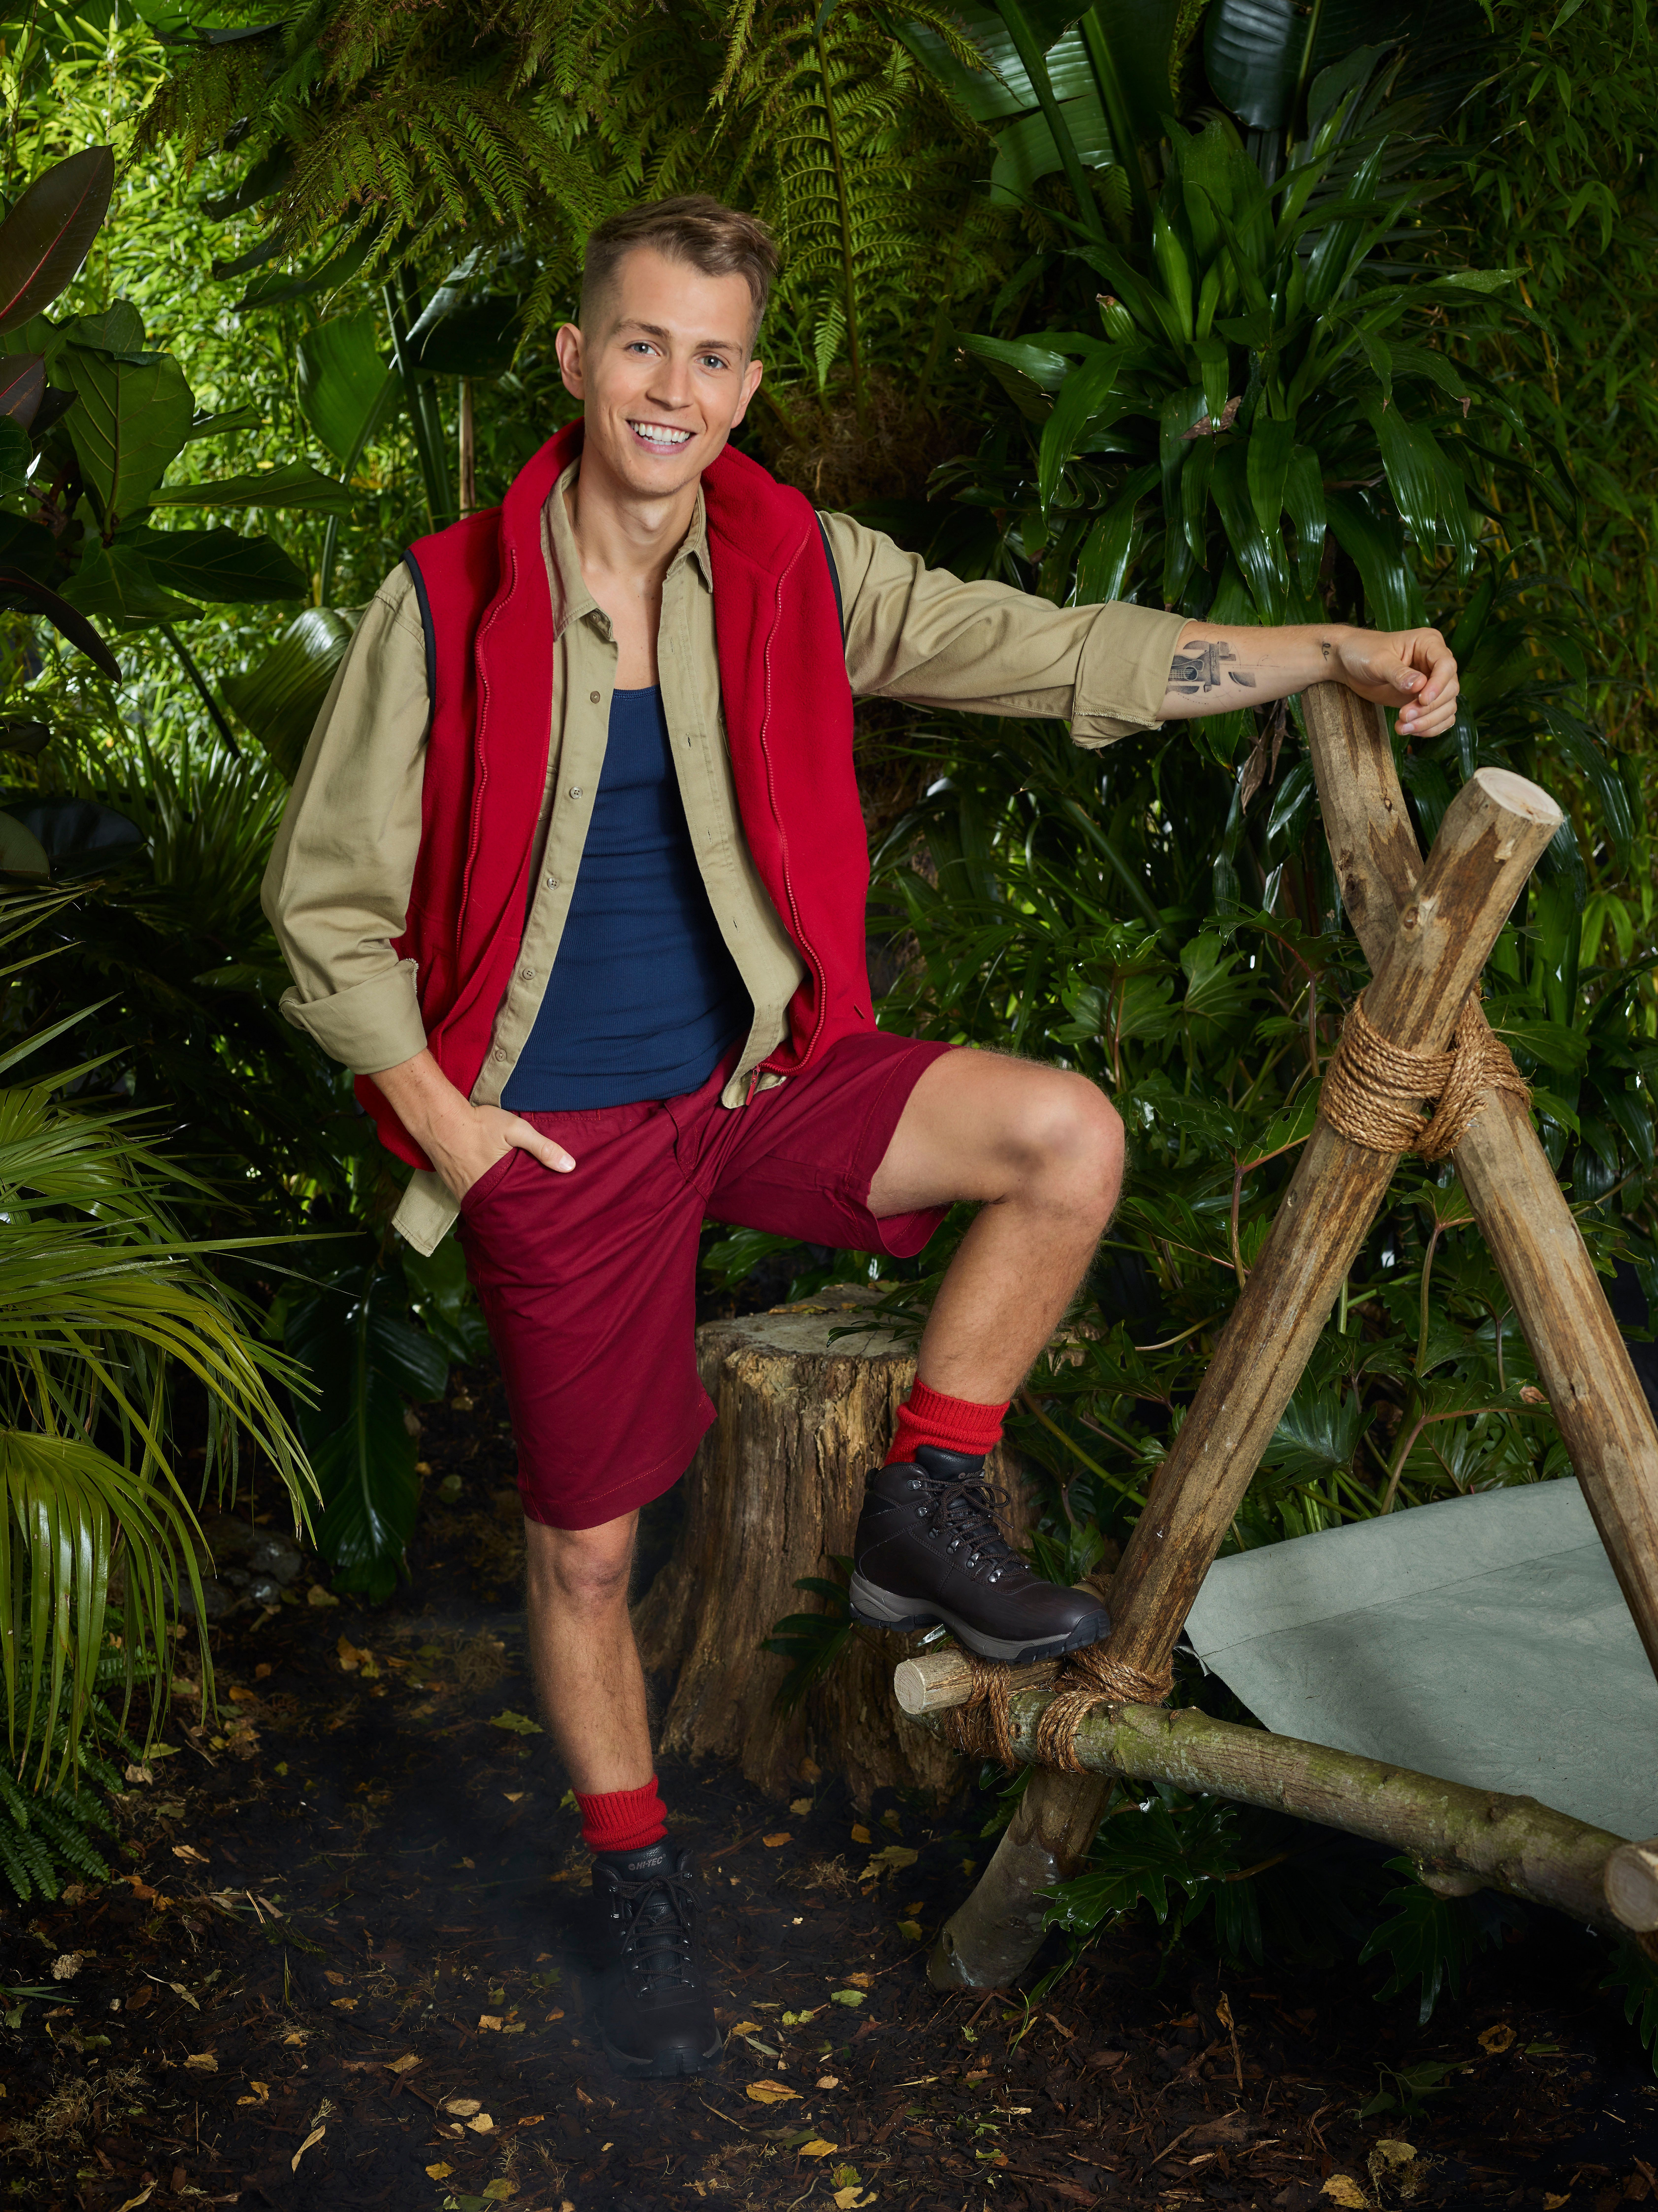 I'm A Celebrity's James McVey Speaks About Eating Disorder For The First